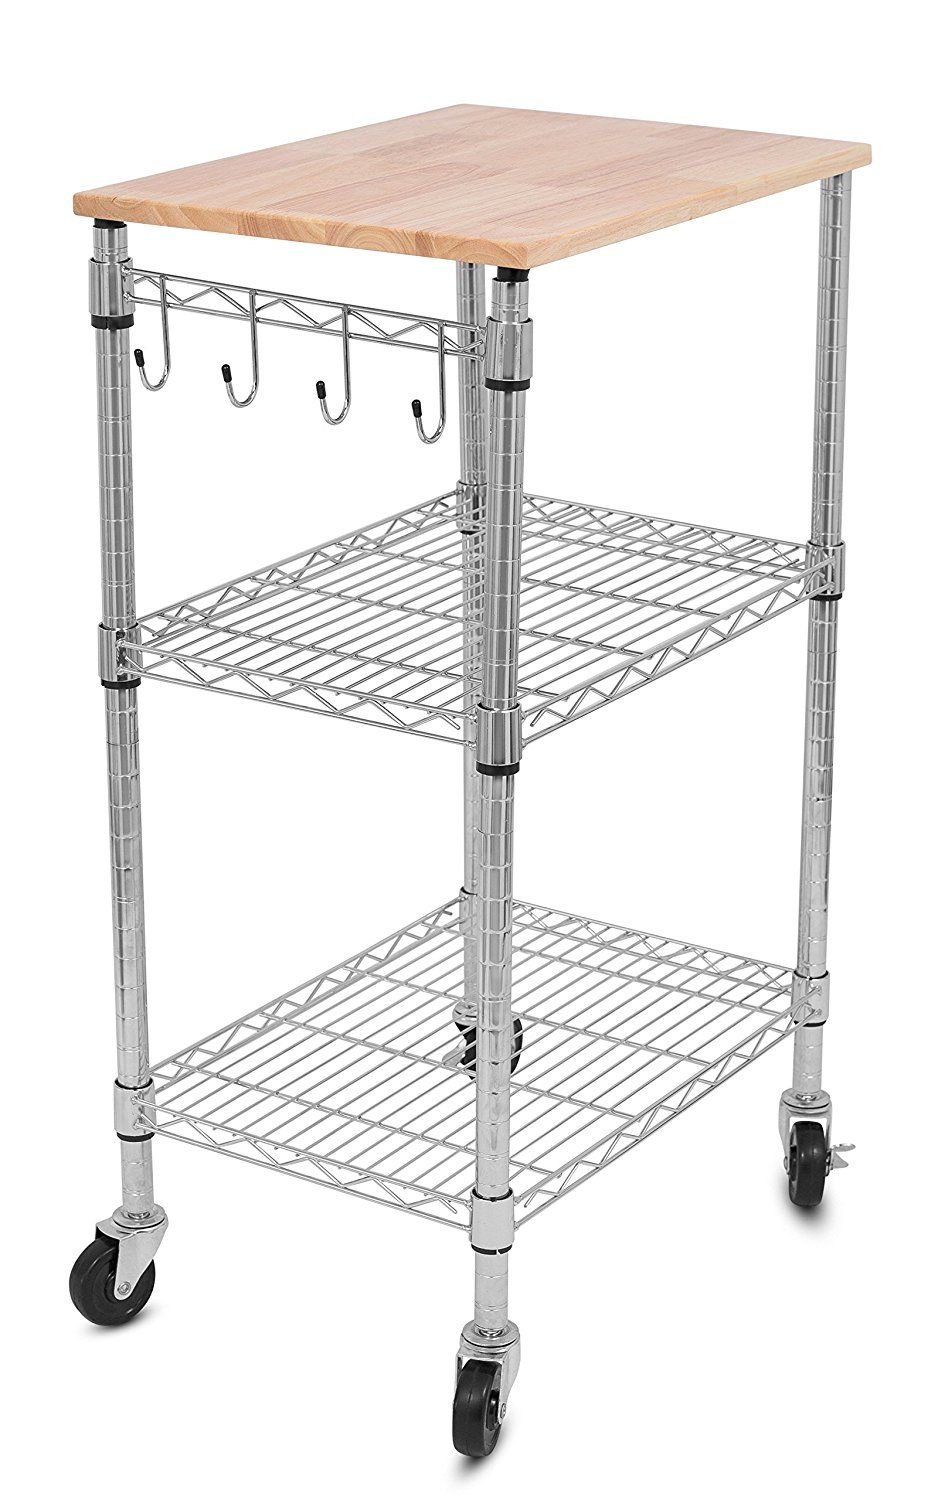 Internets best kitchen cart kitchen island trolley with locking wheels removable cutting board 4 hooks for cooking utensils extra rolling adjustable